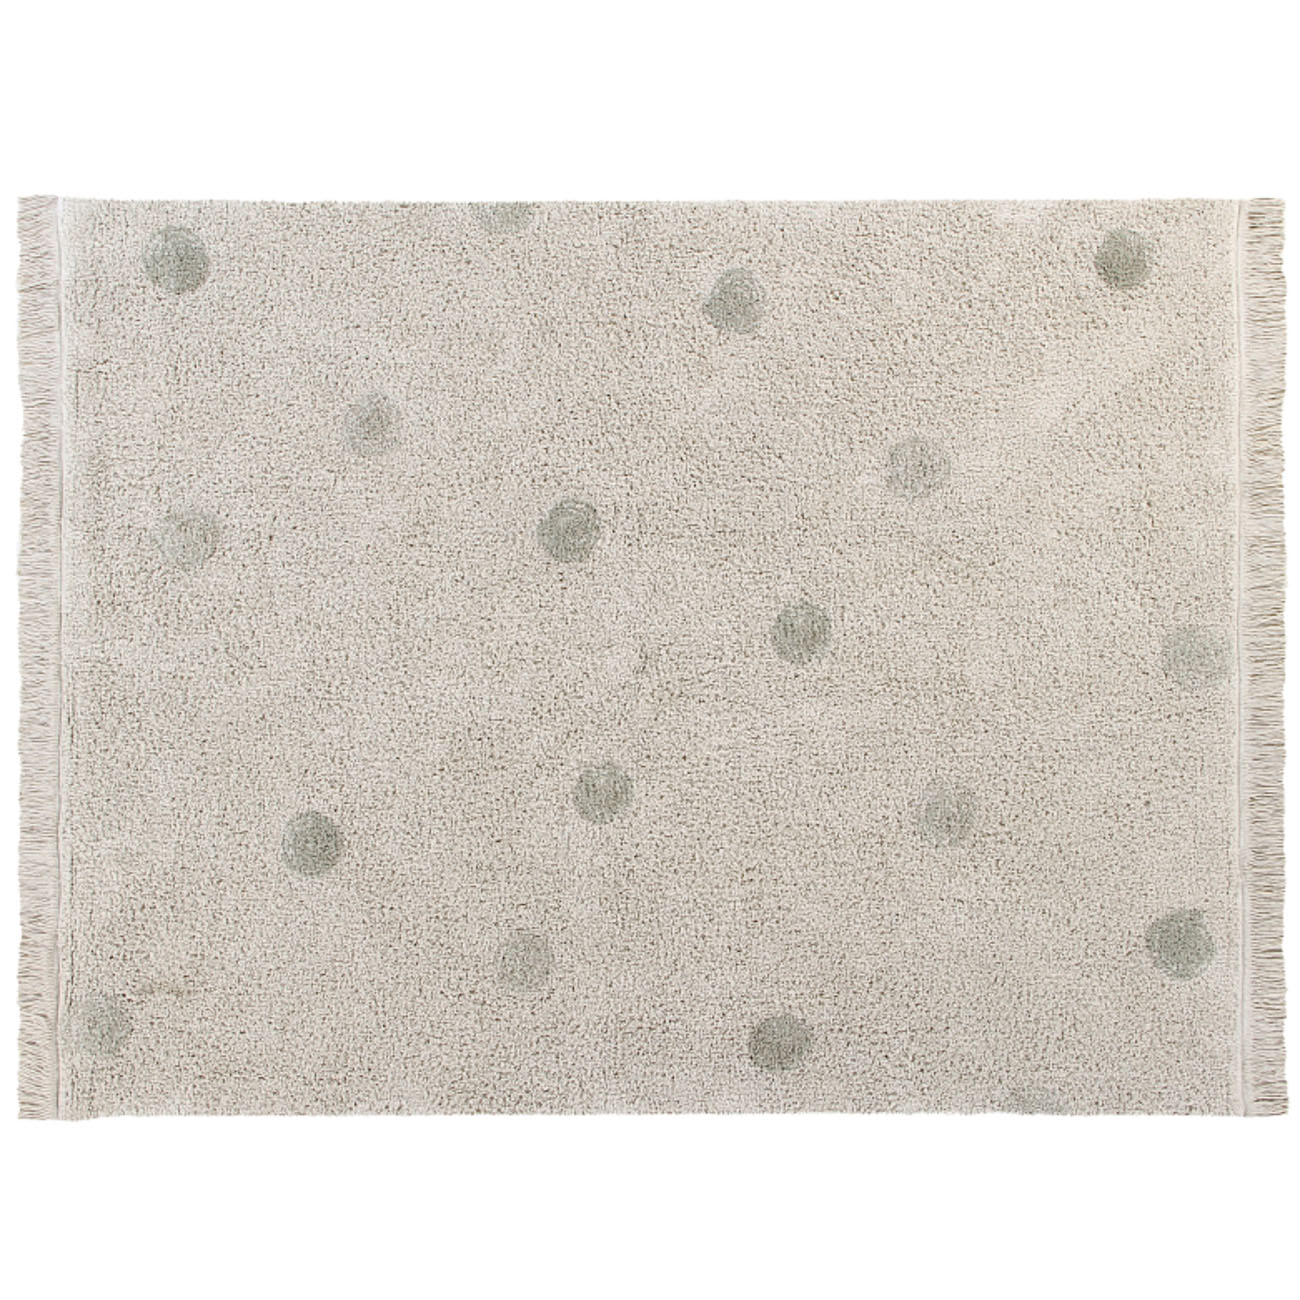 Tapete Lorena Canals Topos Hippy Olive 120 x 160 cm